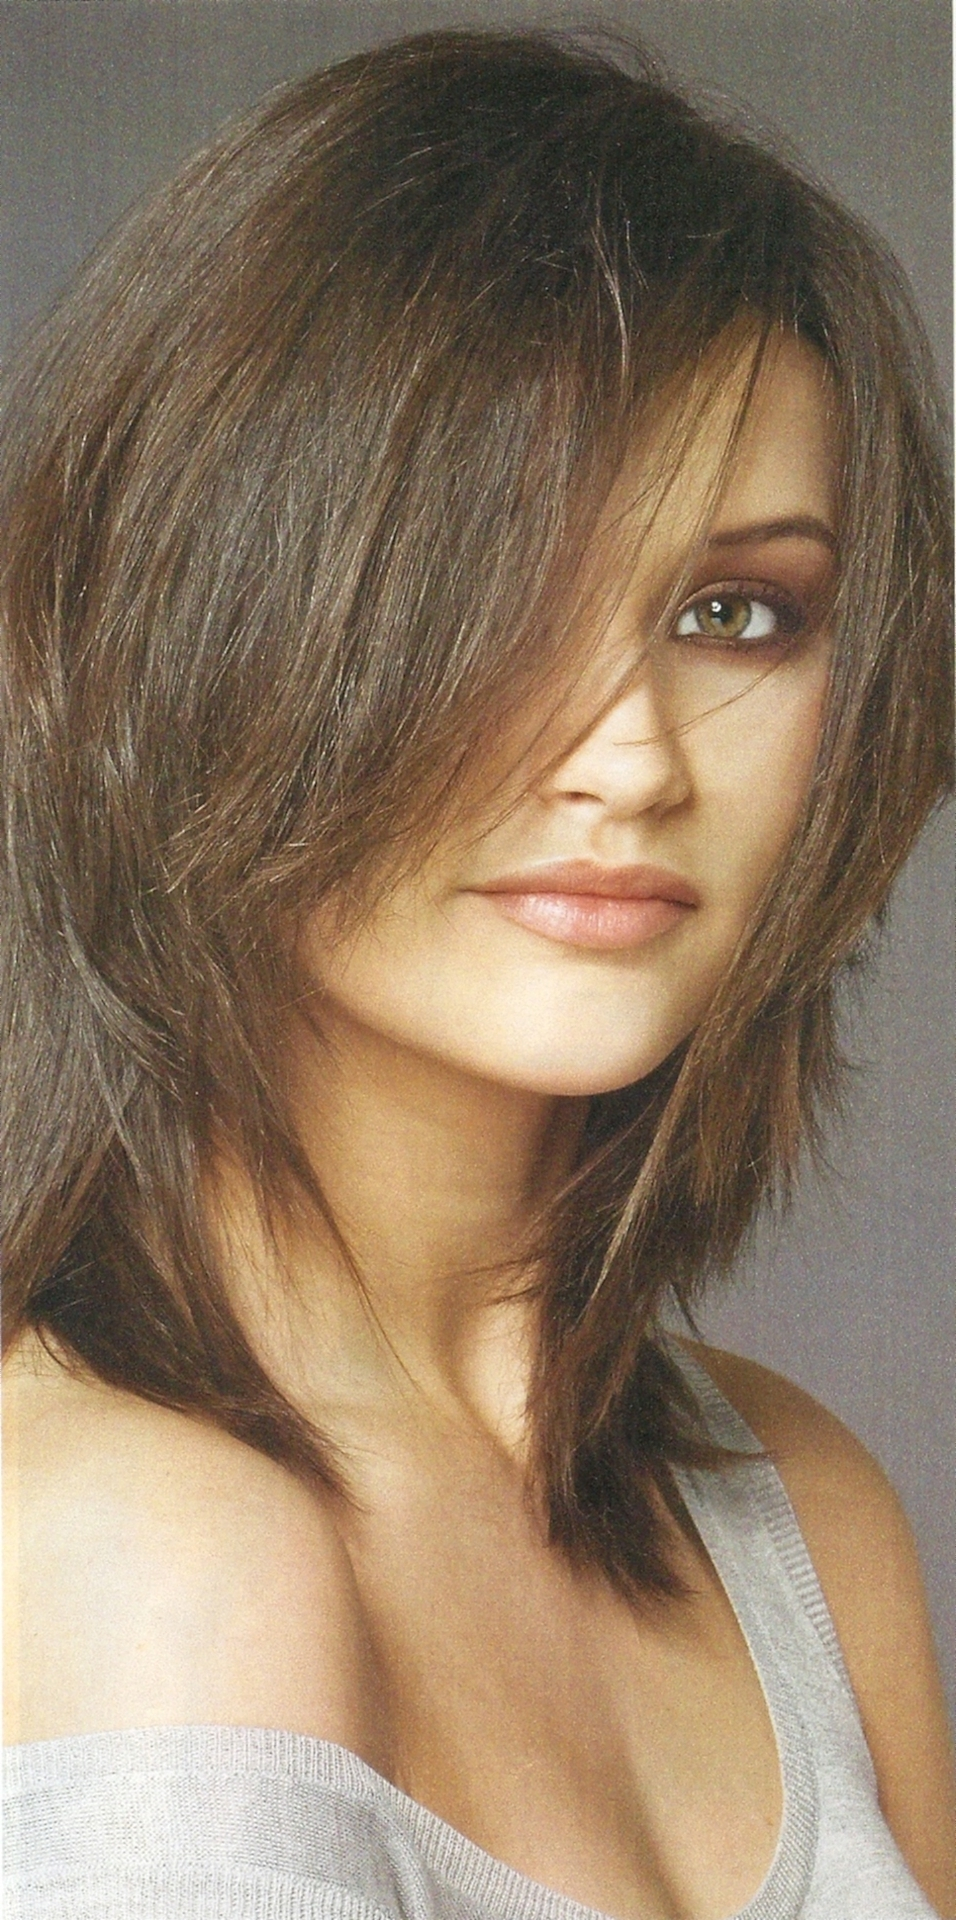 Haircuts With Regard To Fashionable Shaggy Hairstyles For Straight Hair (View 5 of 15)